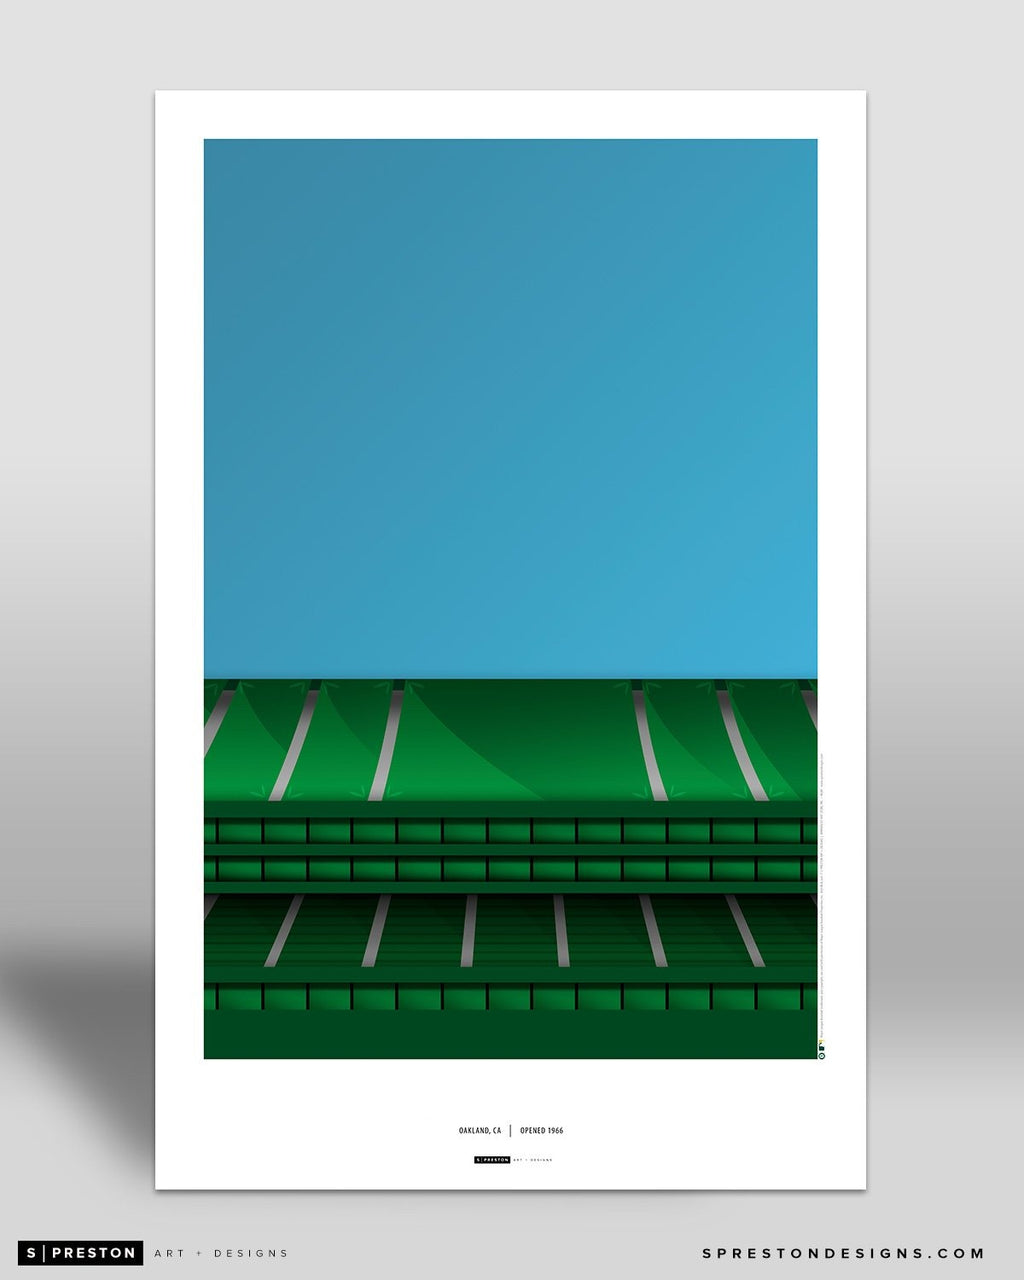 Minimalist Oakland Coliseum Art Poster - Clearance